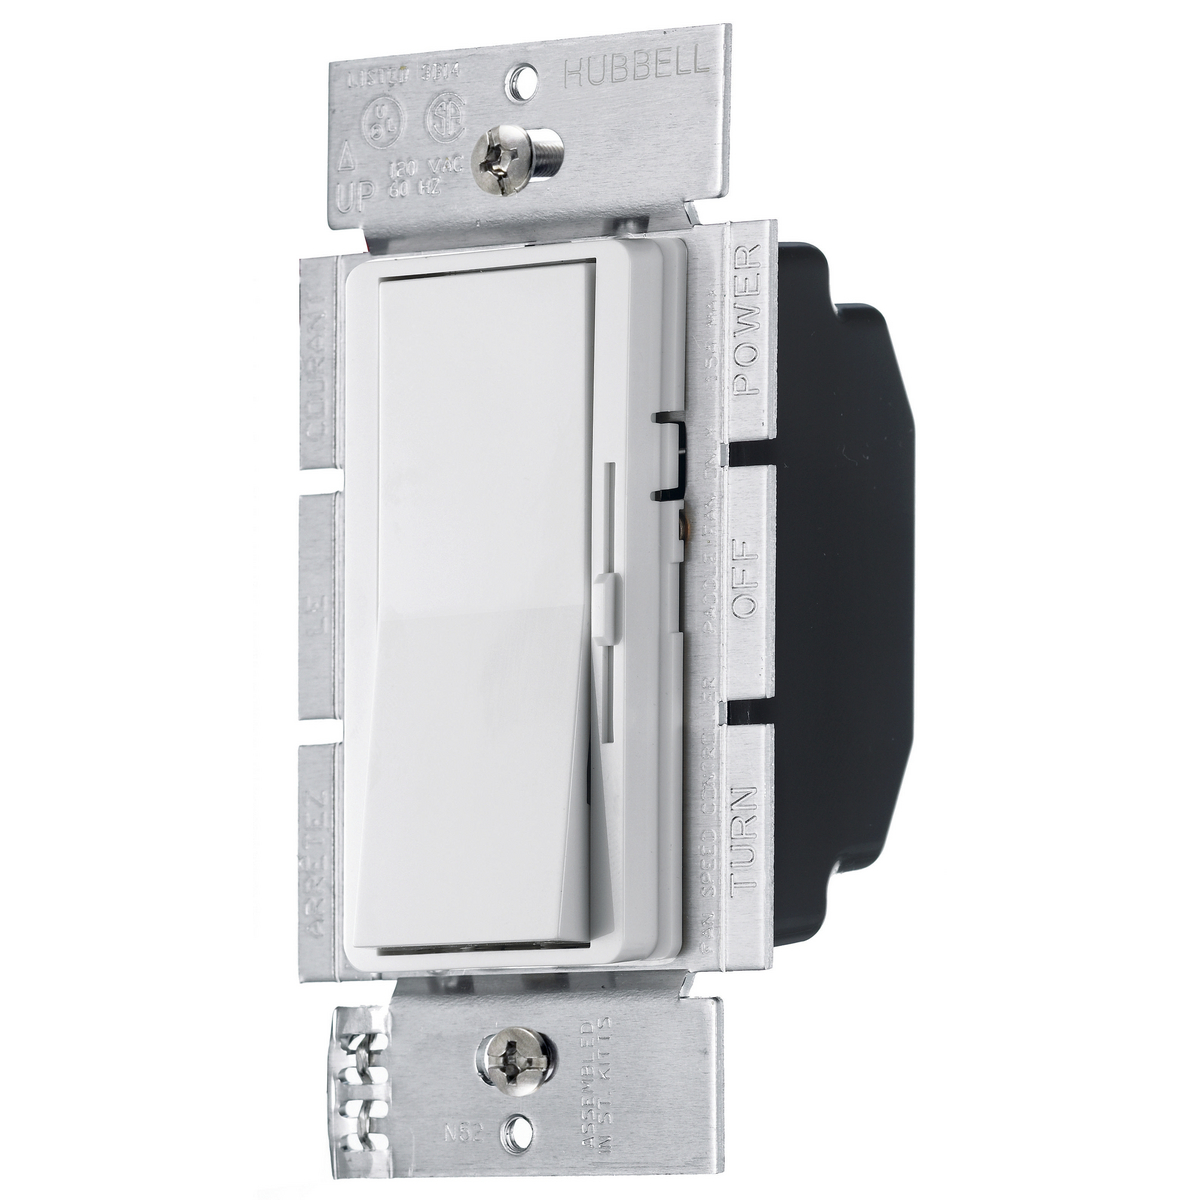 HUBRDV10PW DIMMER, SP, ILL RKR, 1000W 120V, WH ,RDV10PW, HUBBELL